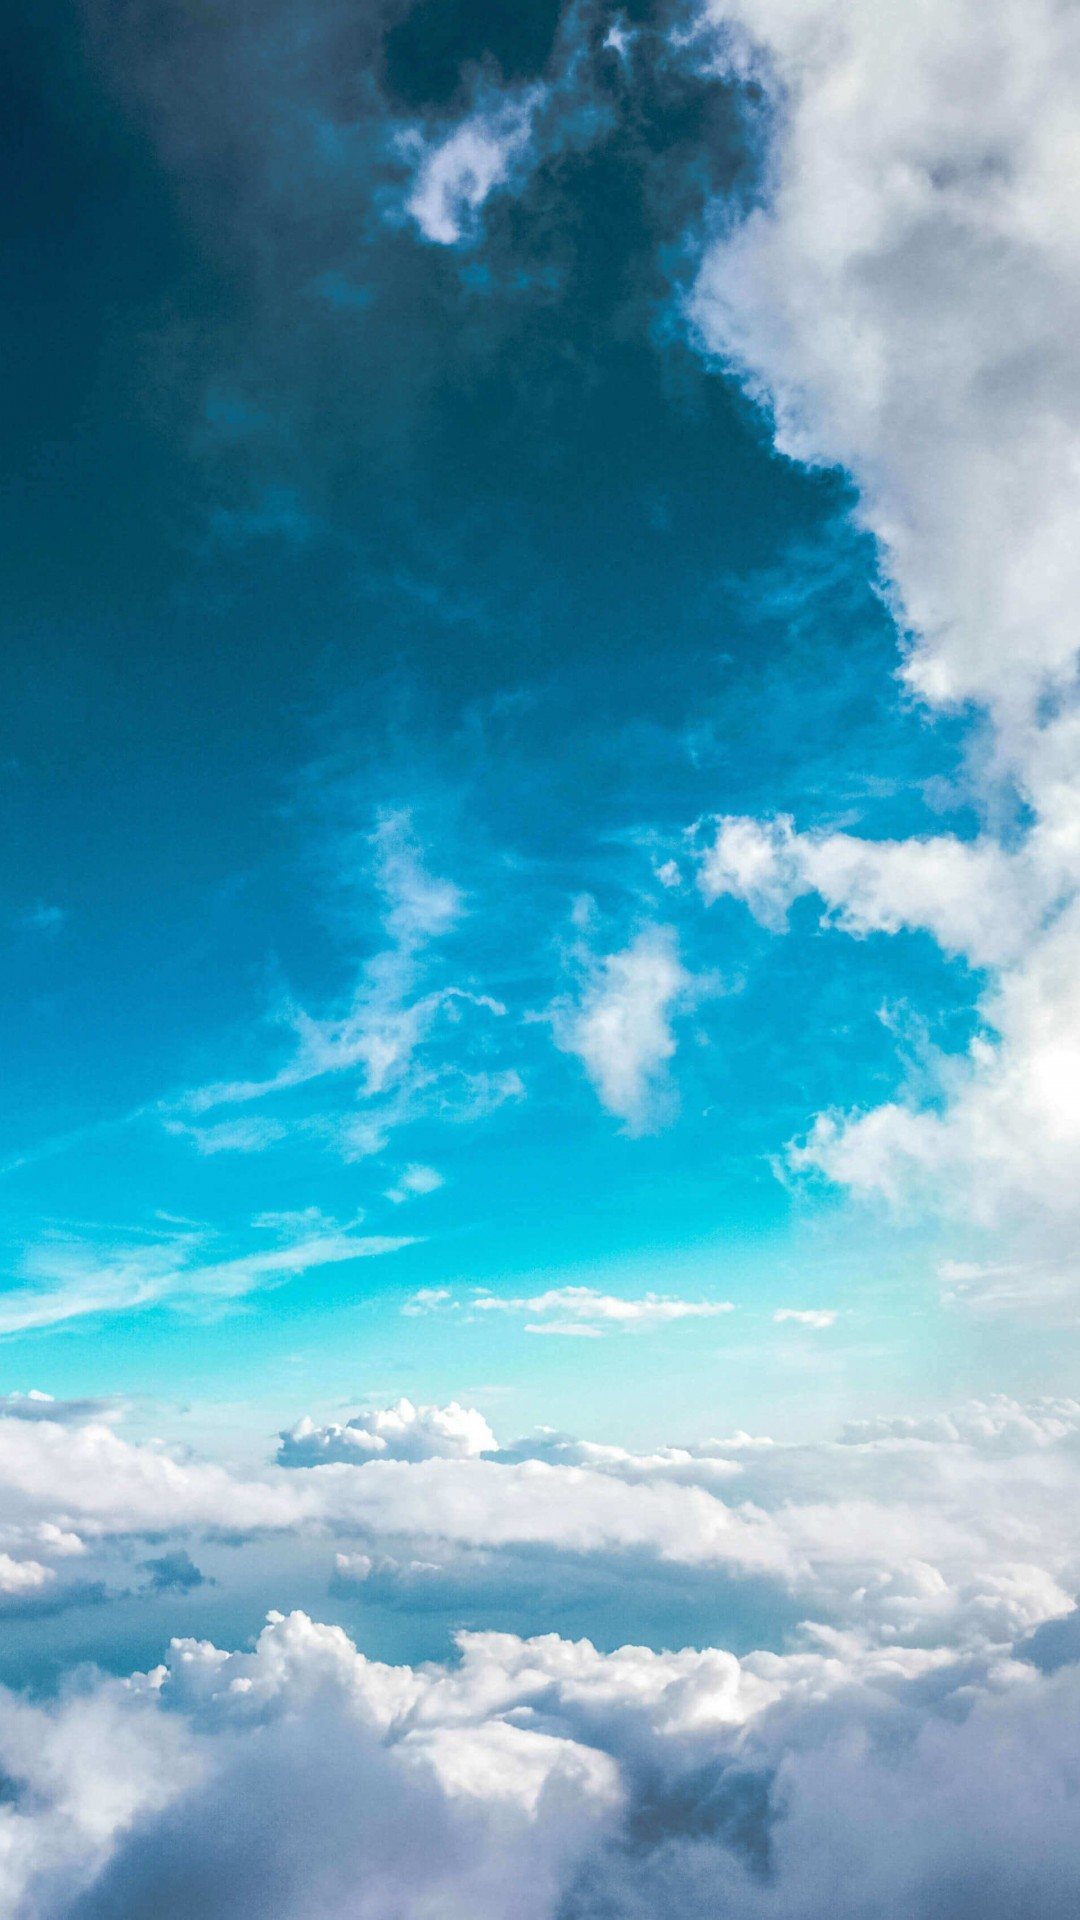 Cloudy Blue Sky Wallpaper for SONY Xperia Z3